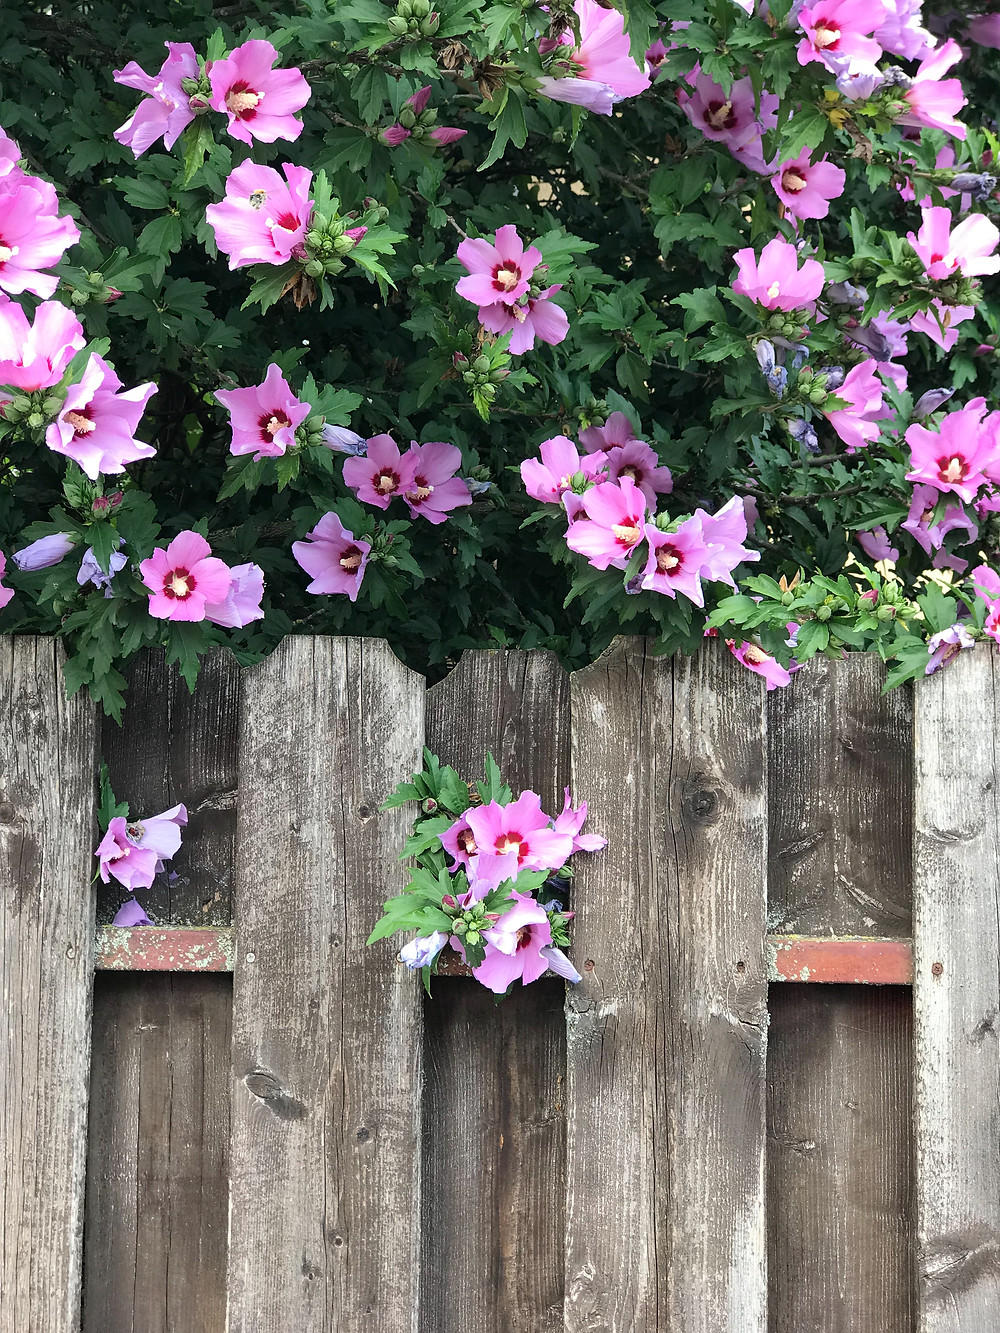 wooden fence with purple flowers